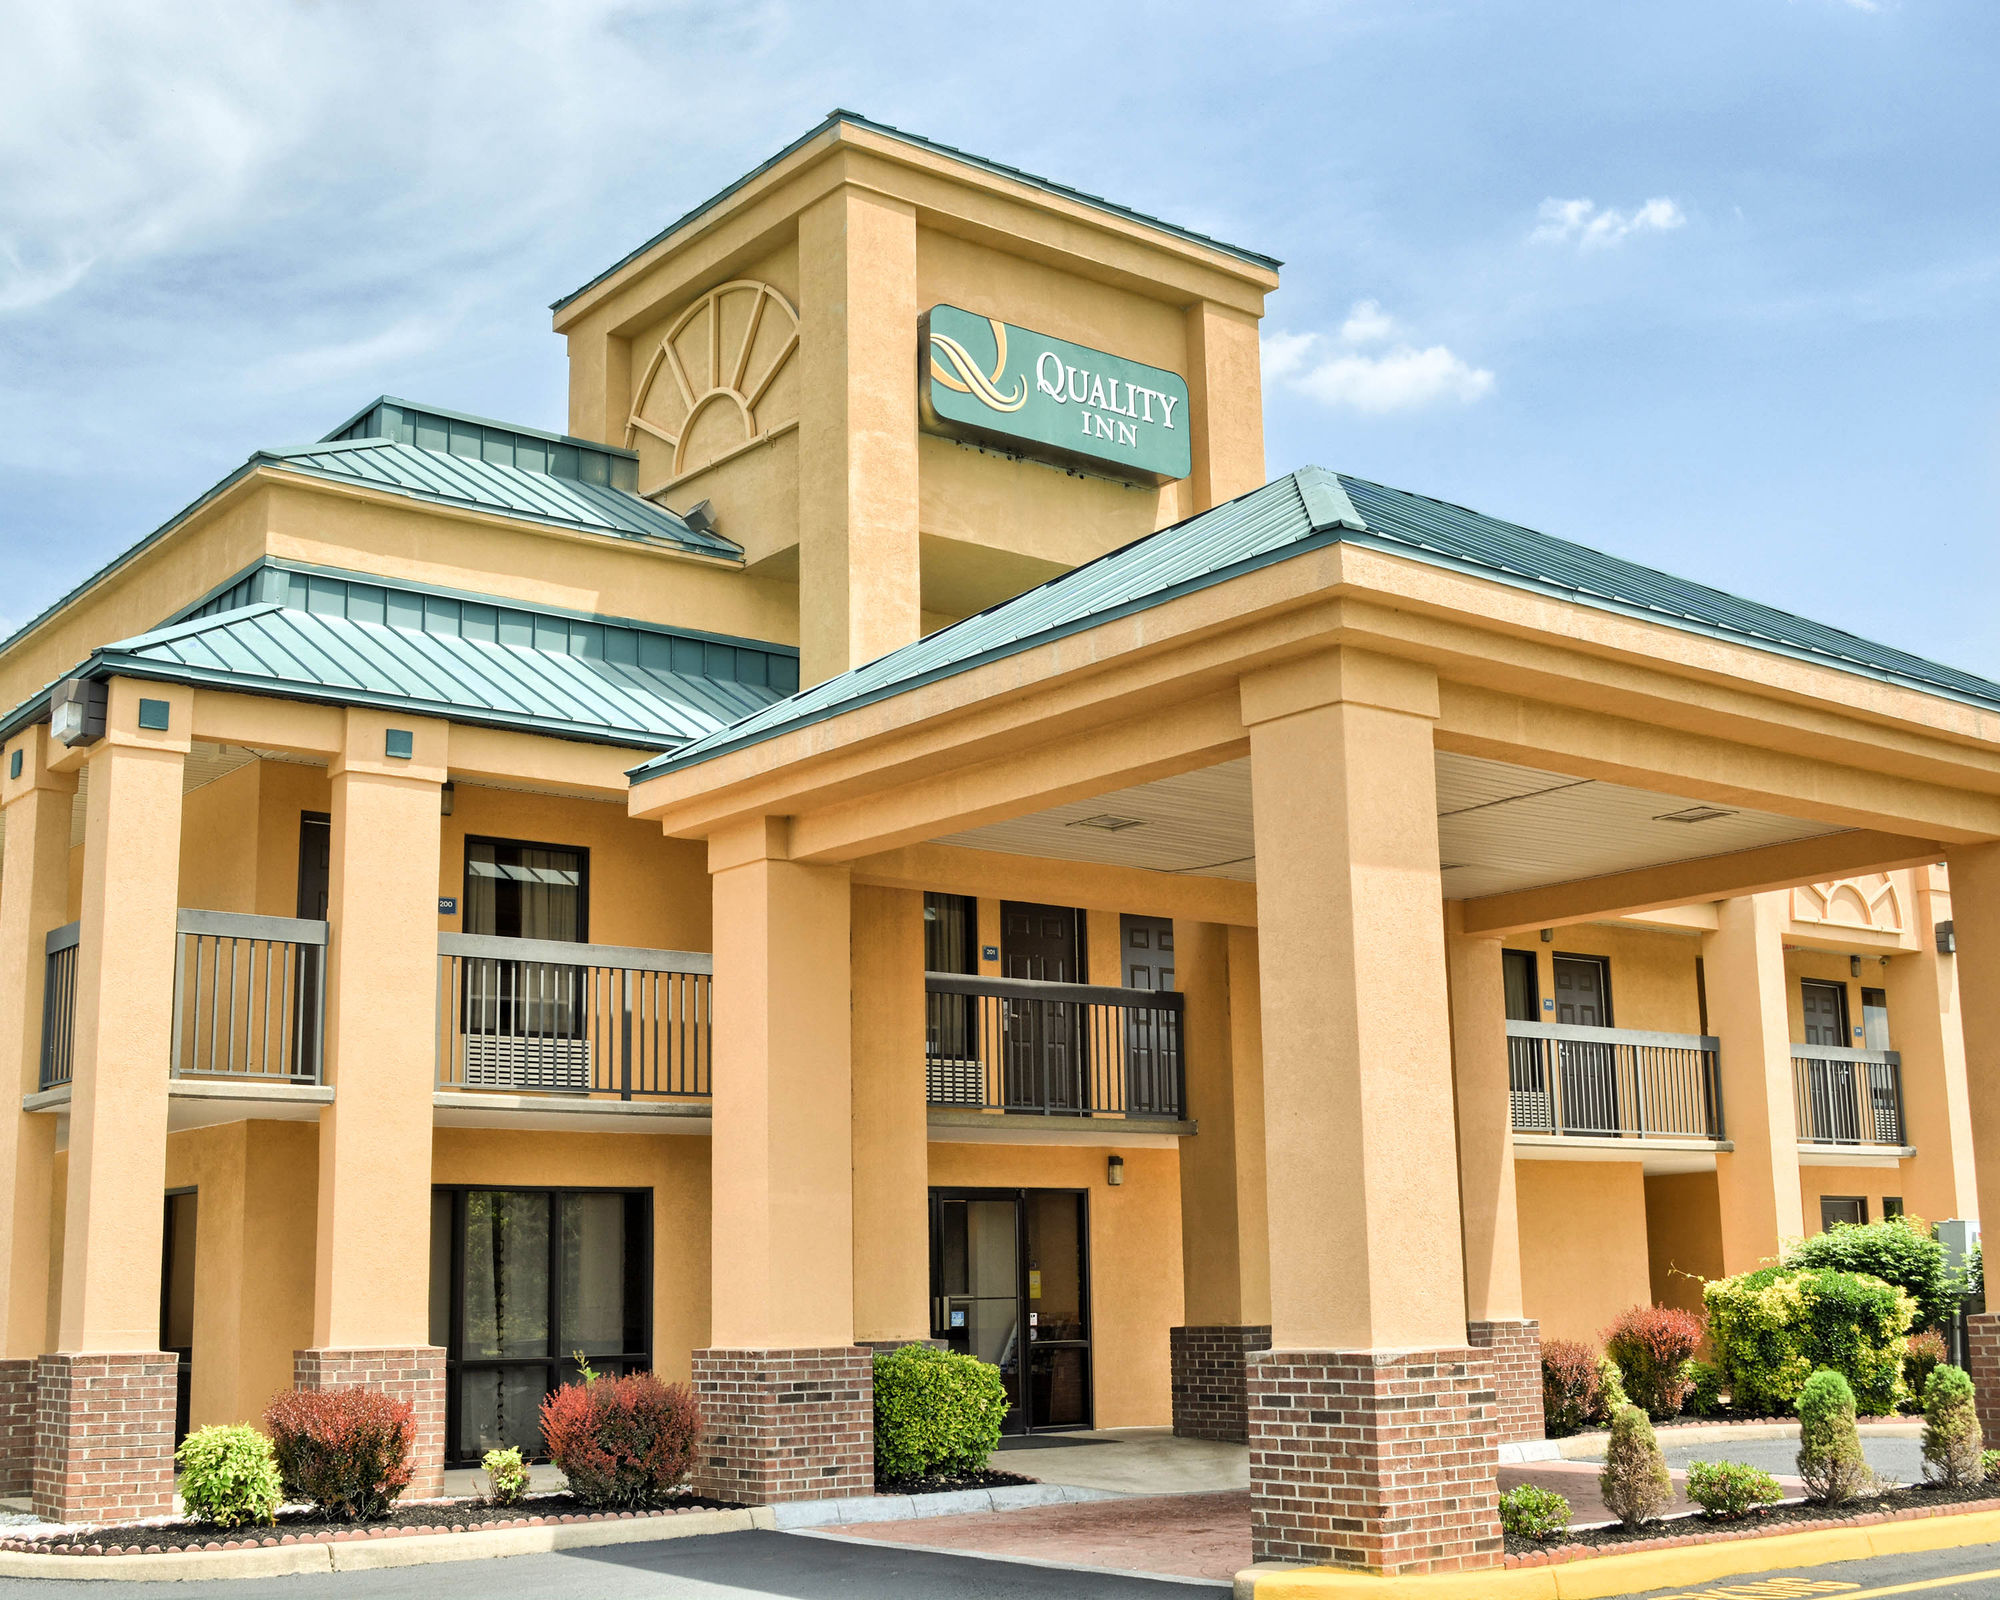 Quality Inn Thornburg in Thornburg, VA